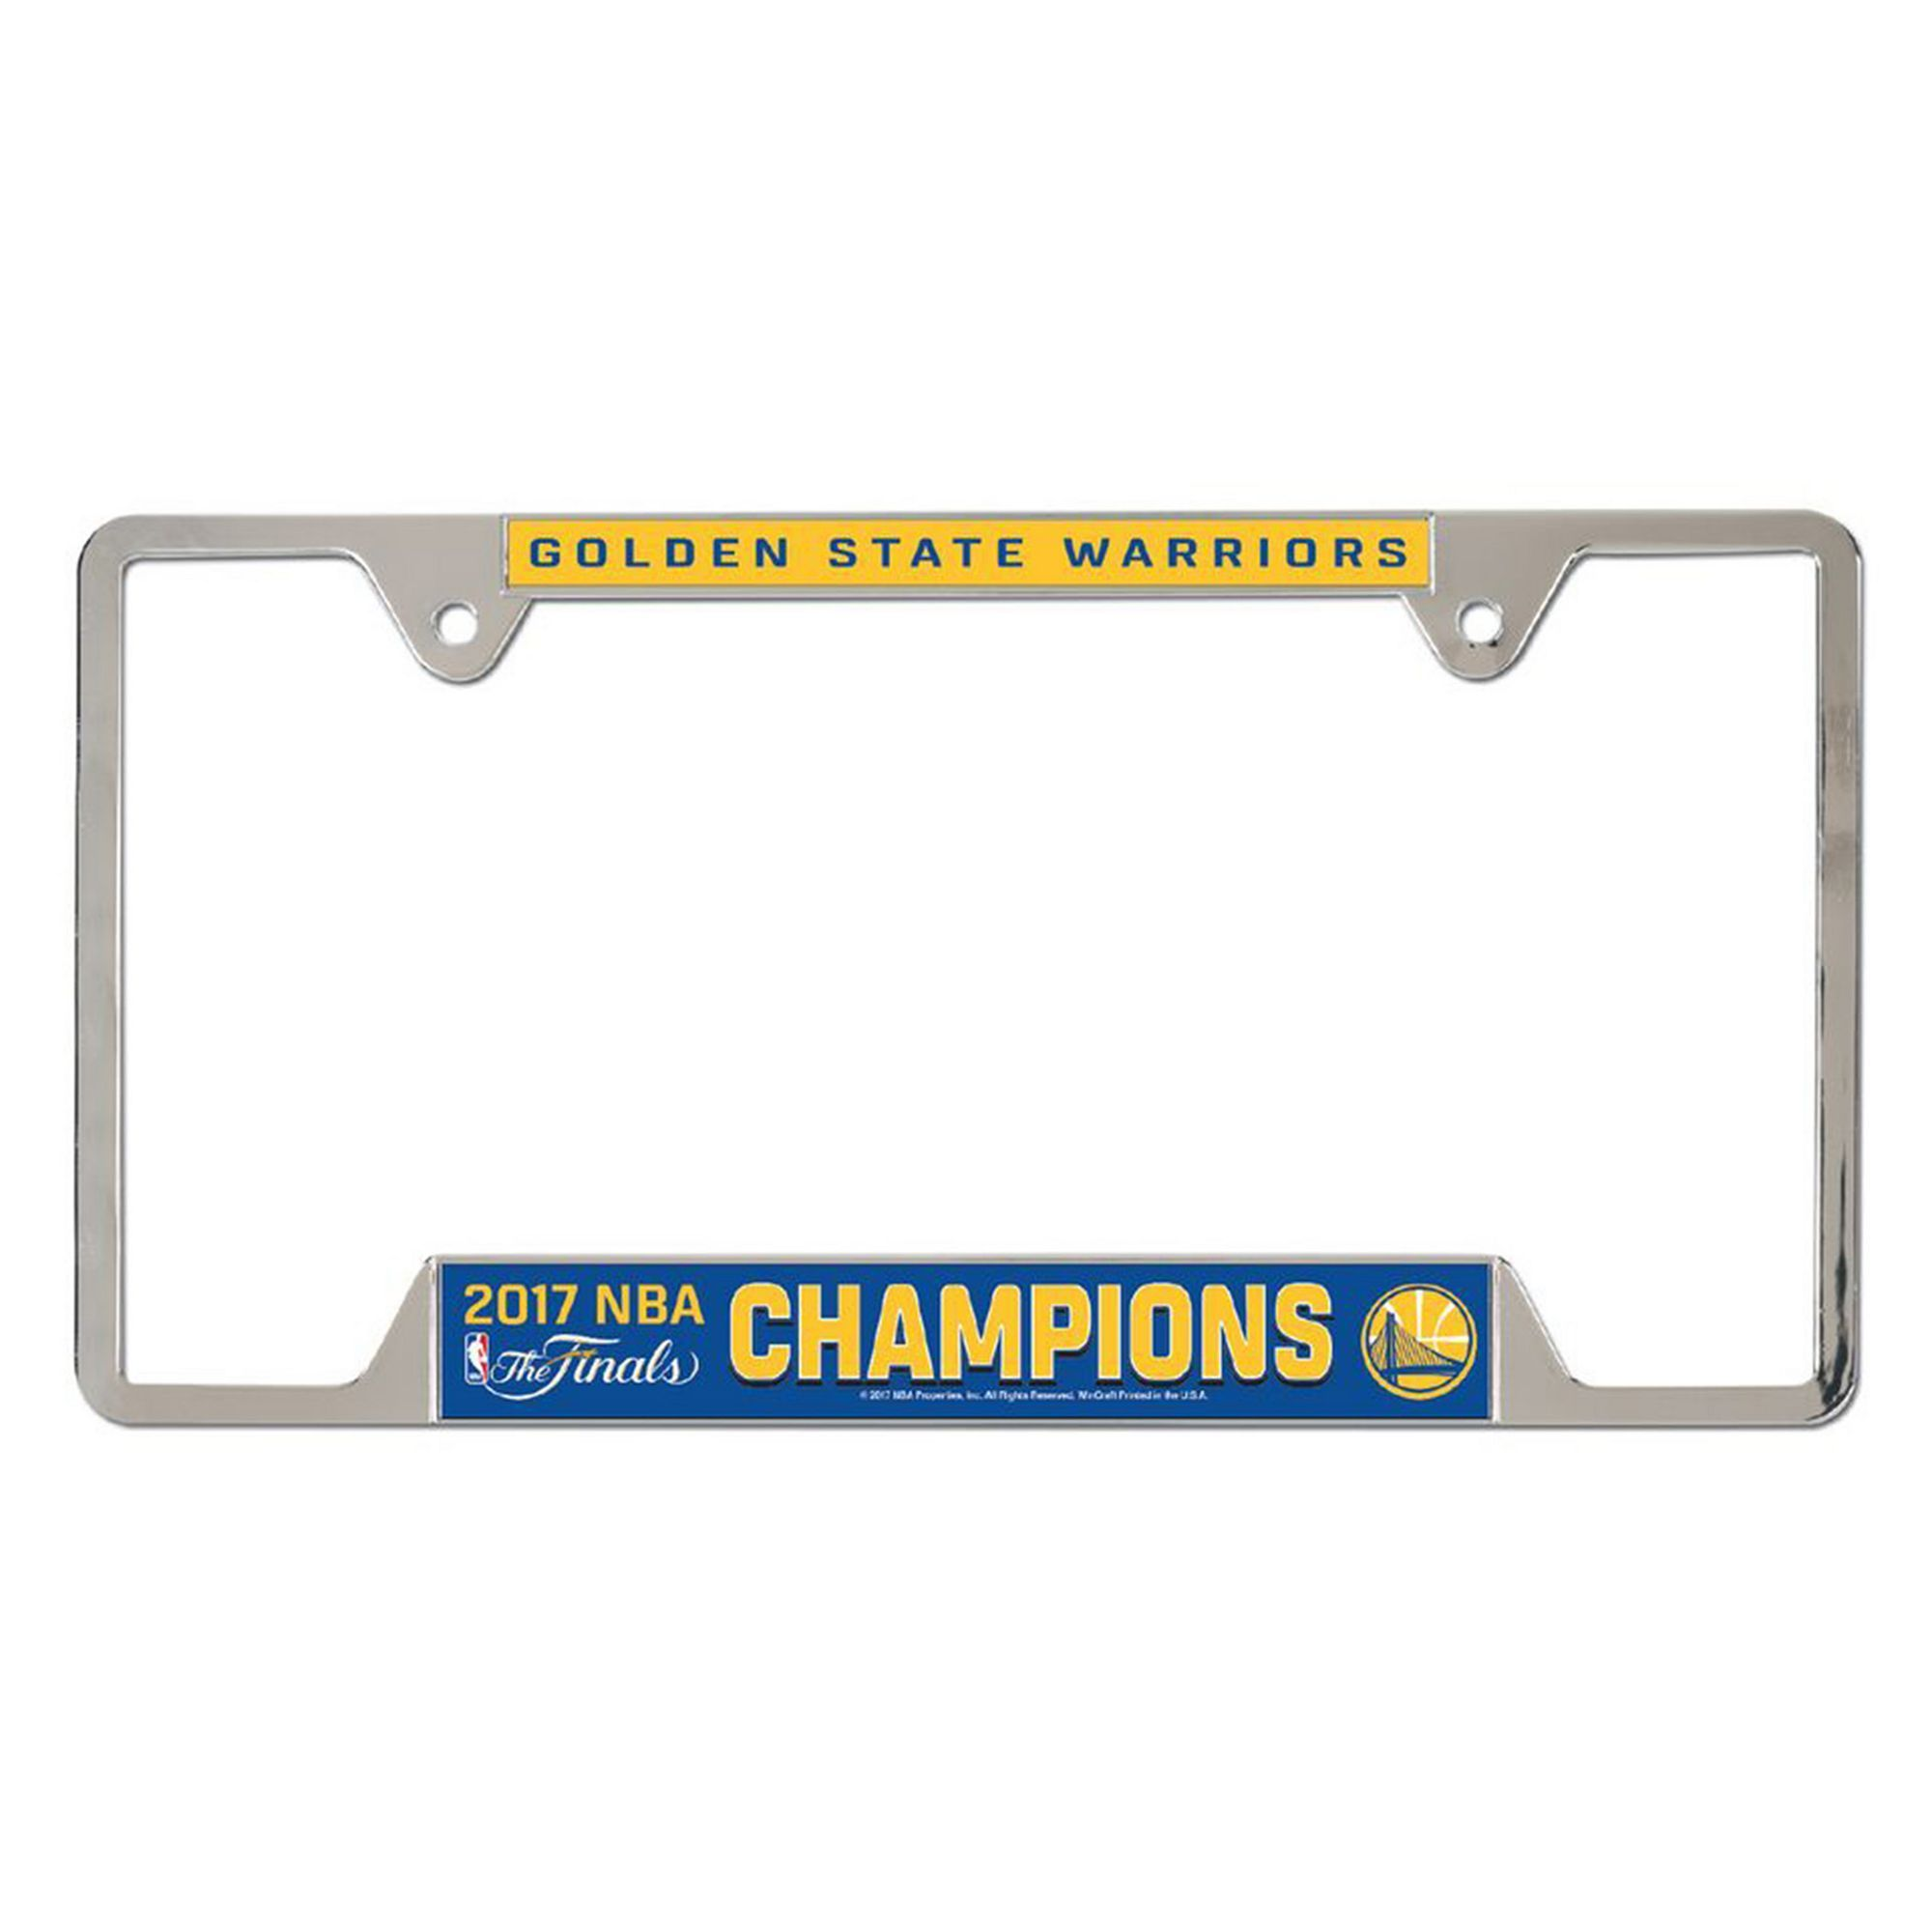 Golden State Warriors 2017 NBA Champions License Plate Frame ...